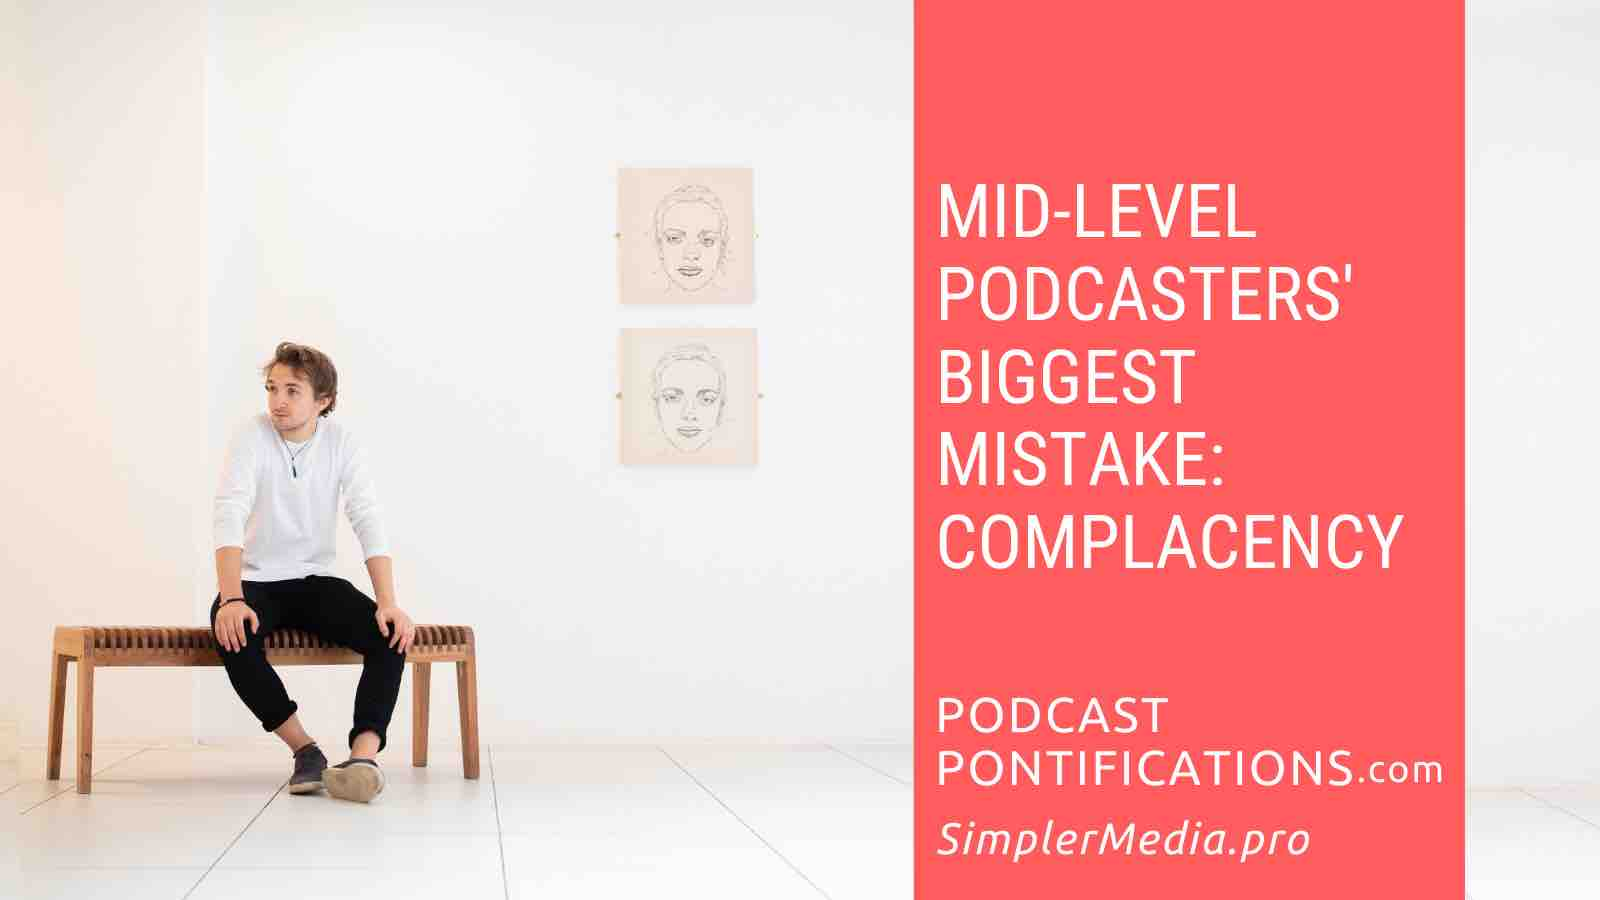 Mid-Level Podcasters' Biggest Mistake: Complacency